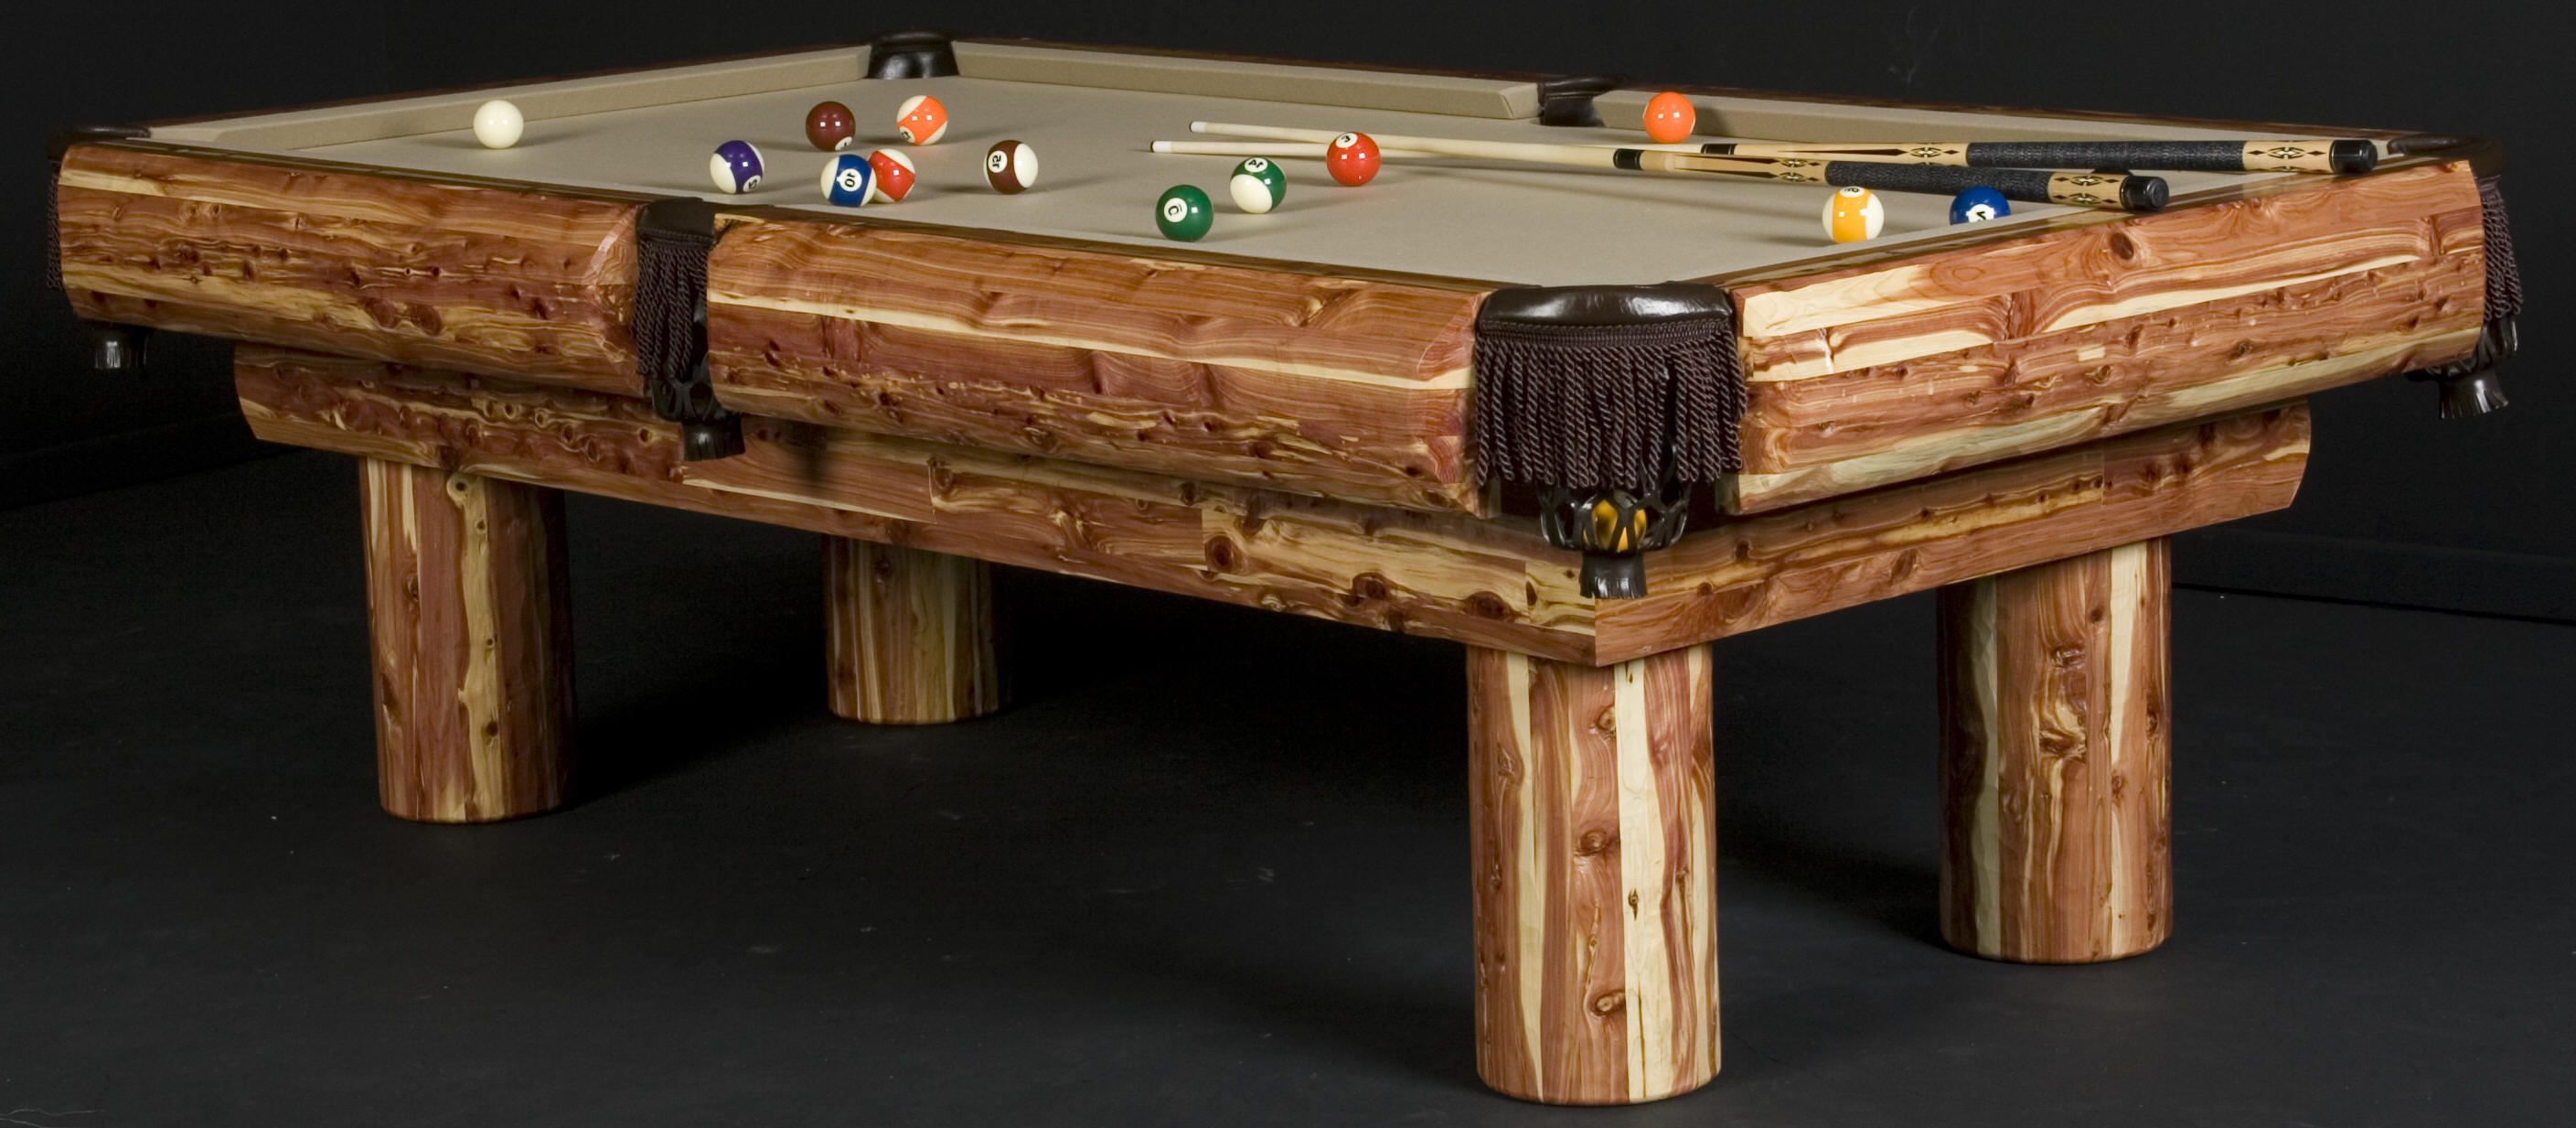 Pool Table: A Decorative Furniture as well as Hobby ...